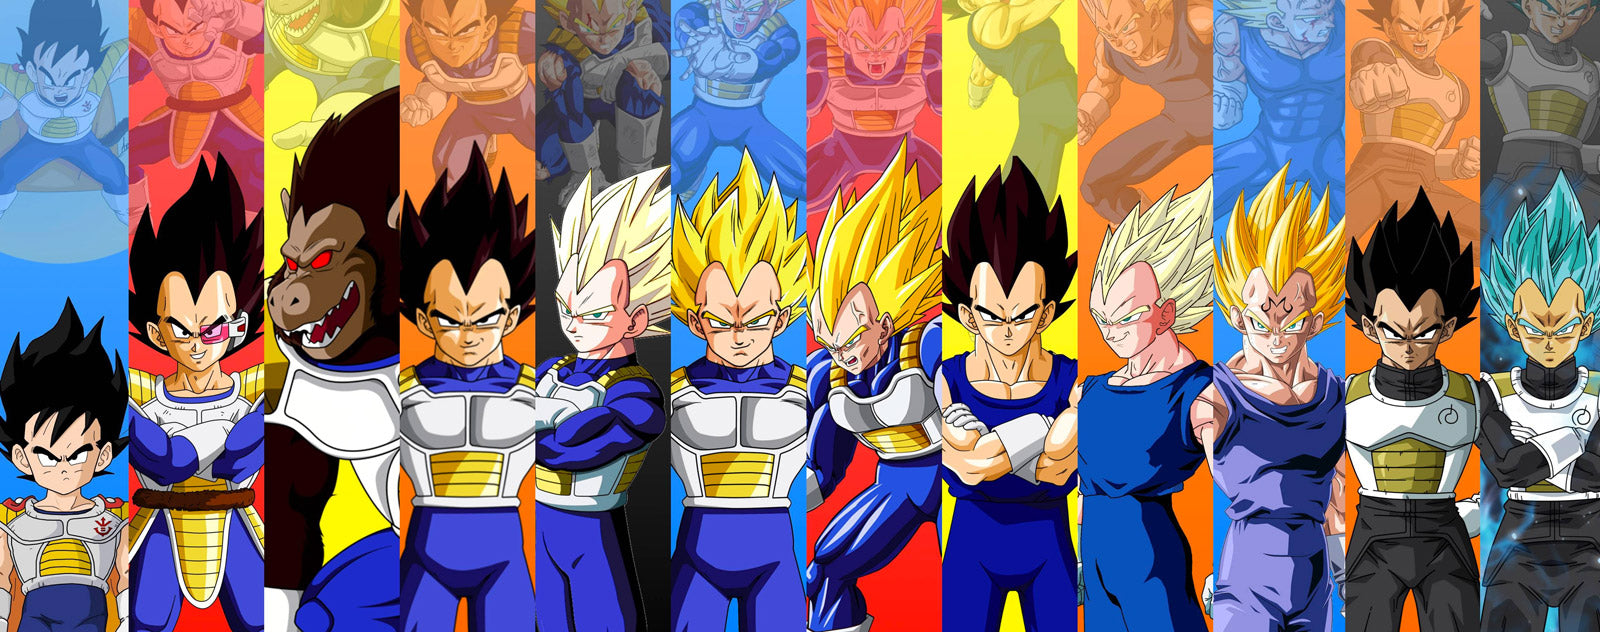 Vegeta transformations